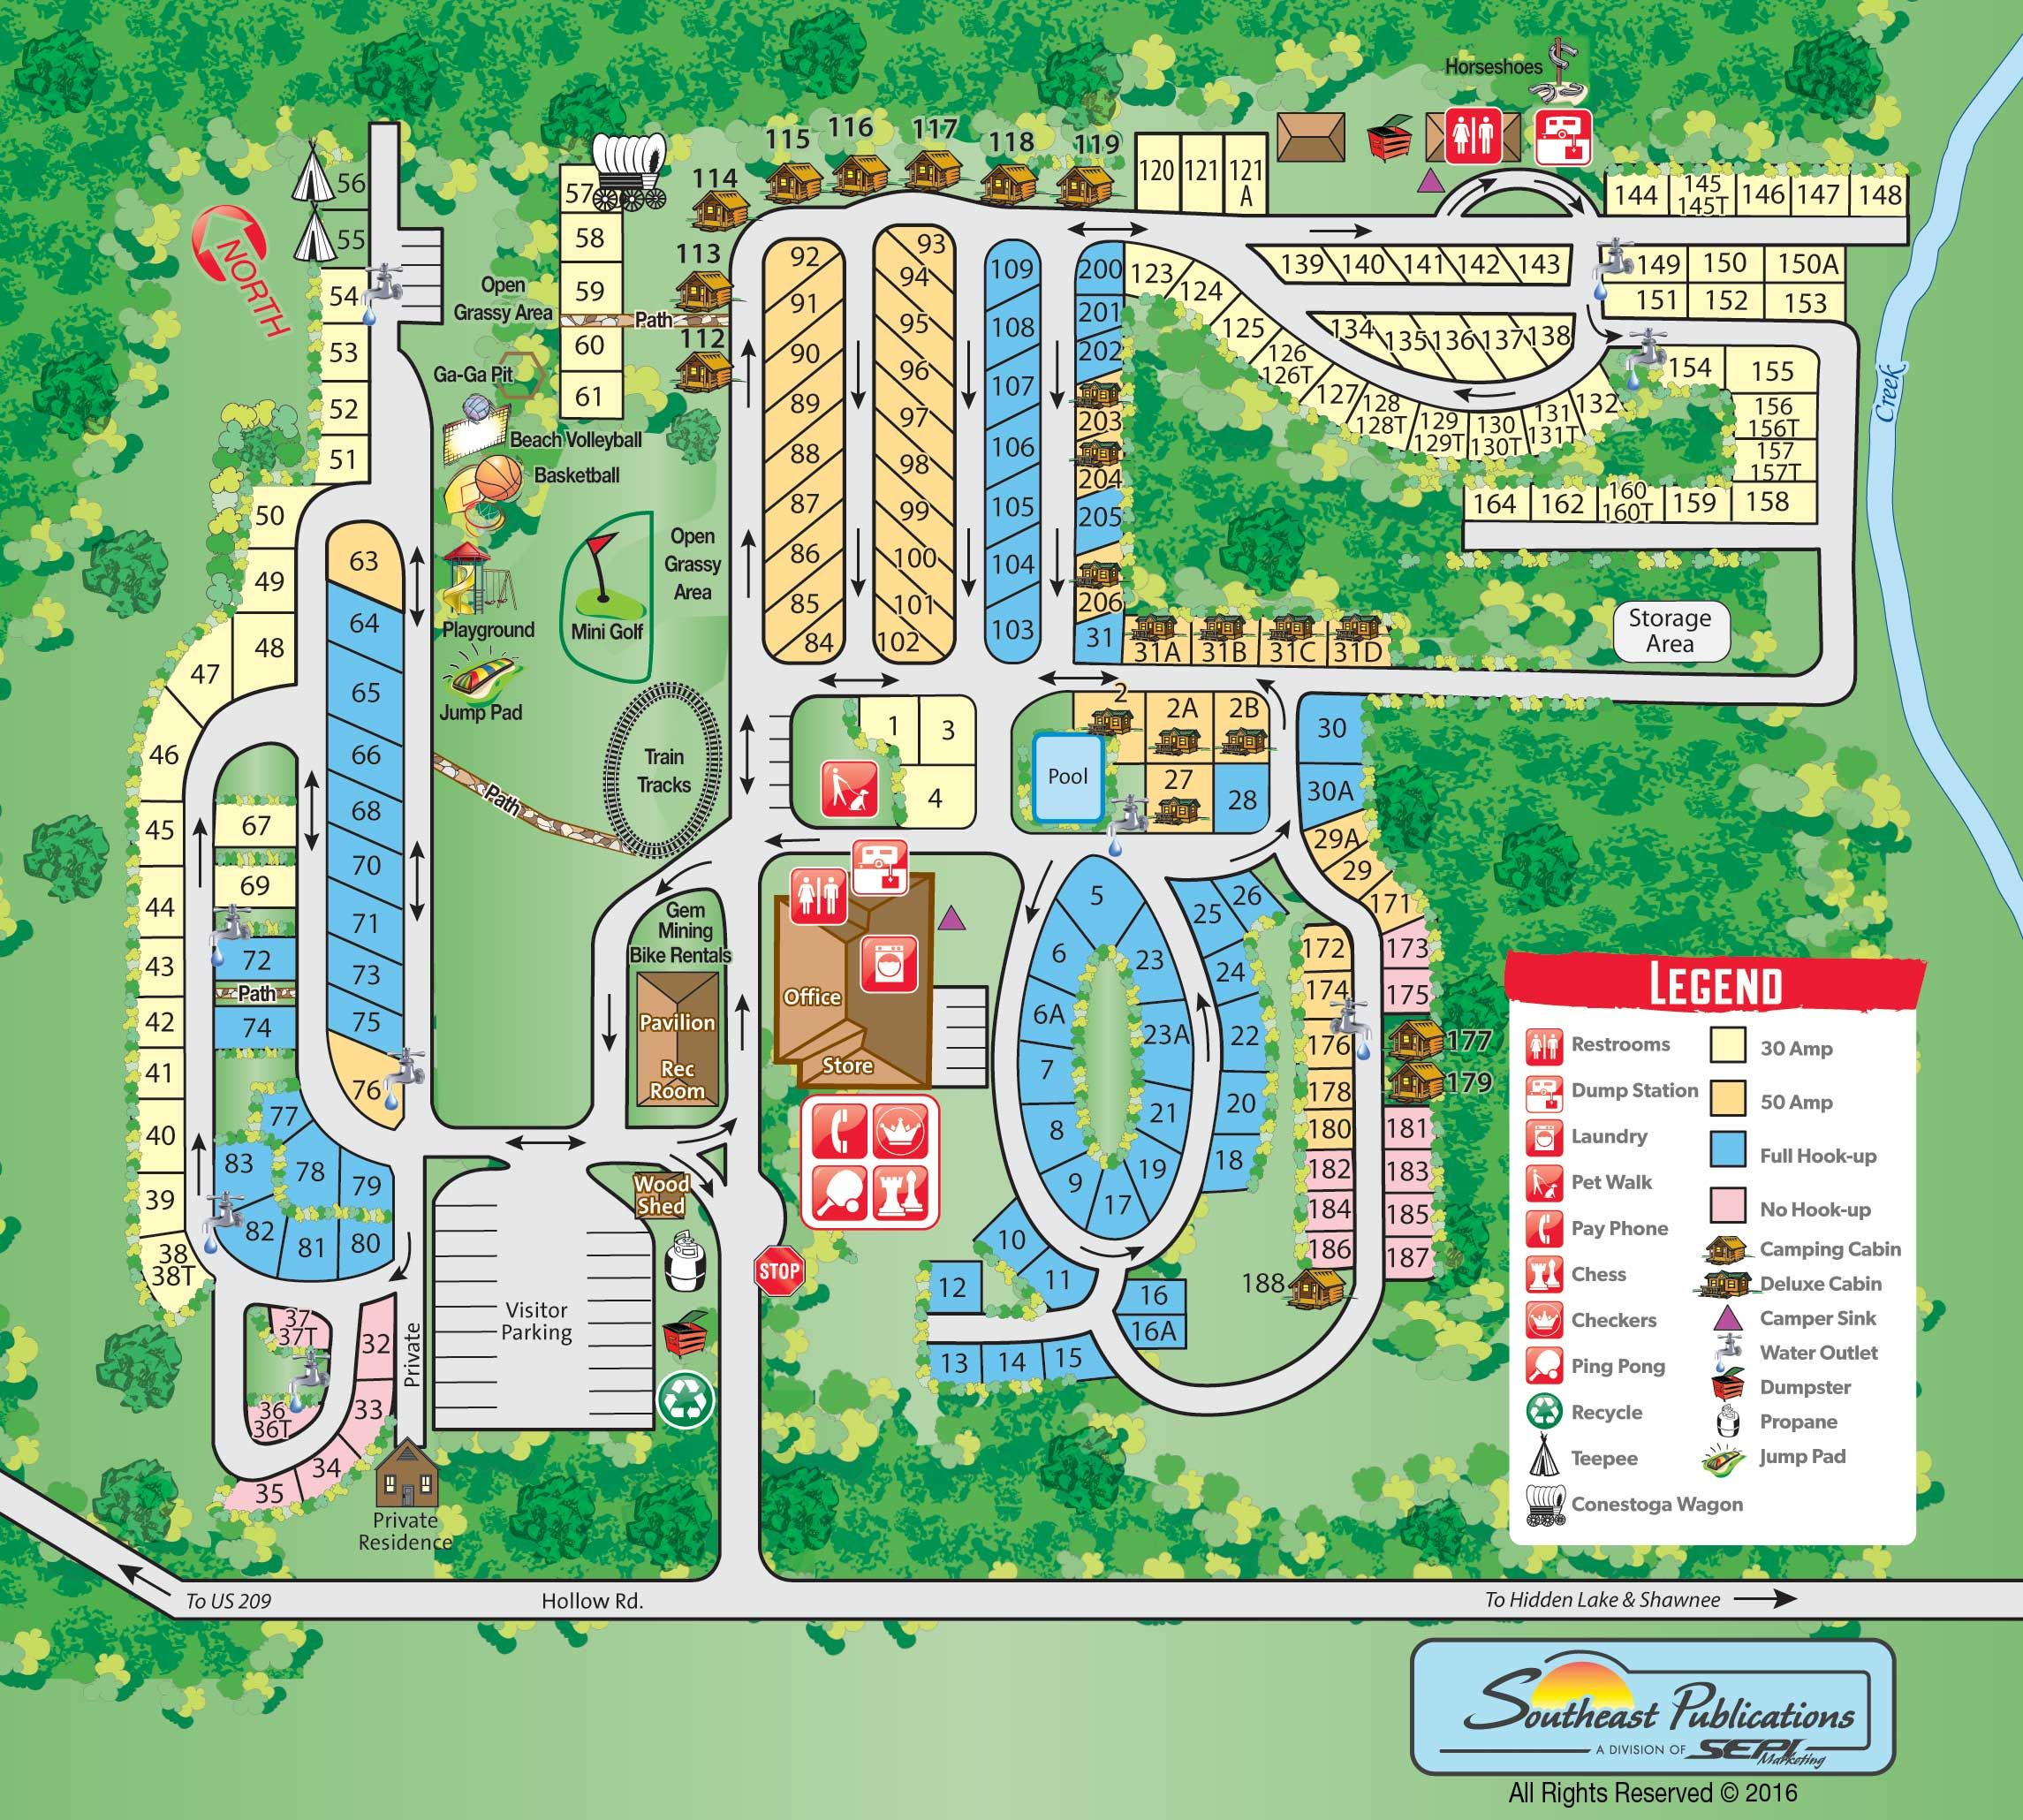 Campground Site Map | Campsite | Delaware water gap, Best ... on